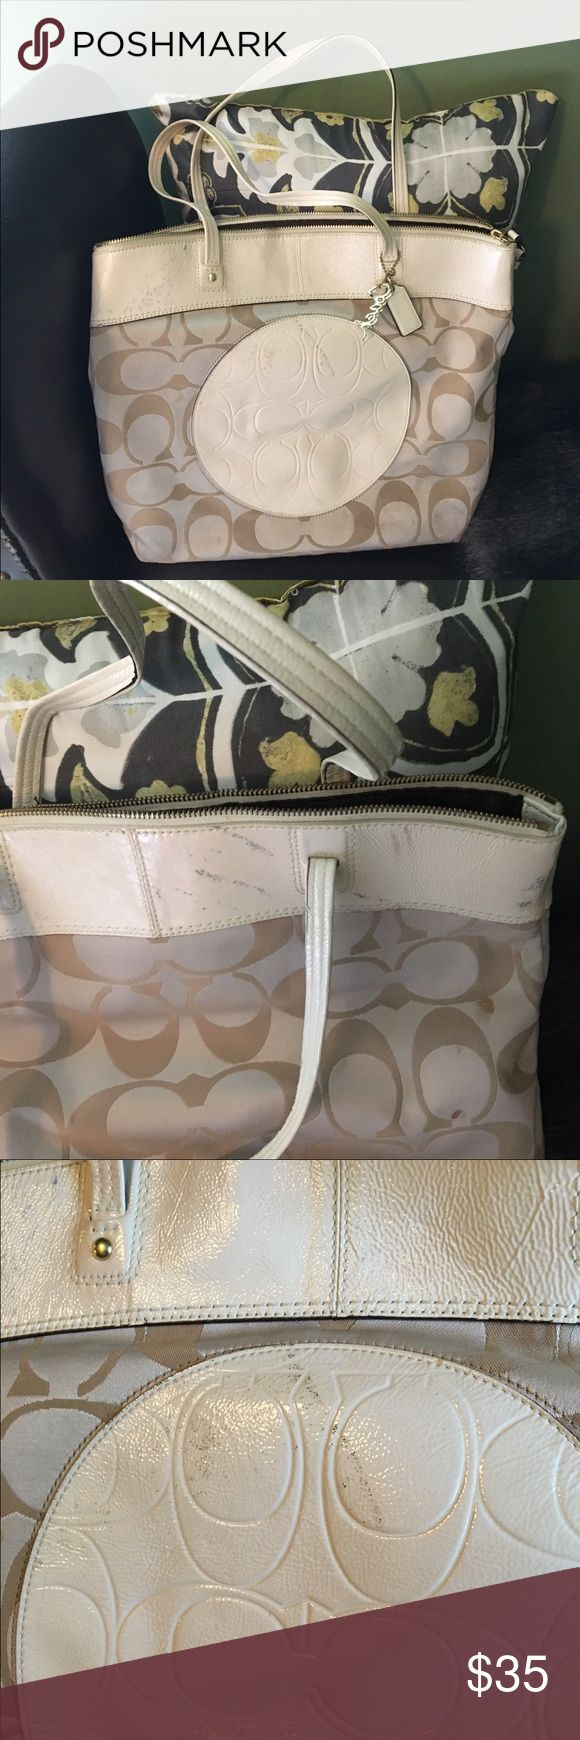 Coach tote bag Coach tote bag with scuffing. Authentic Coach Coach Bags Totes